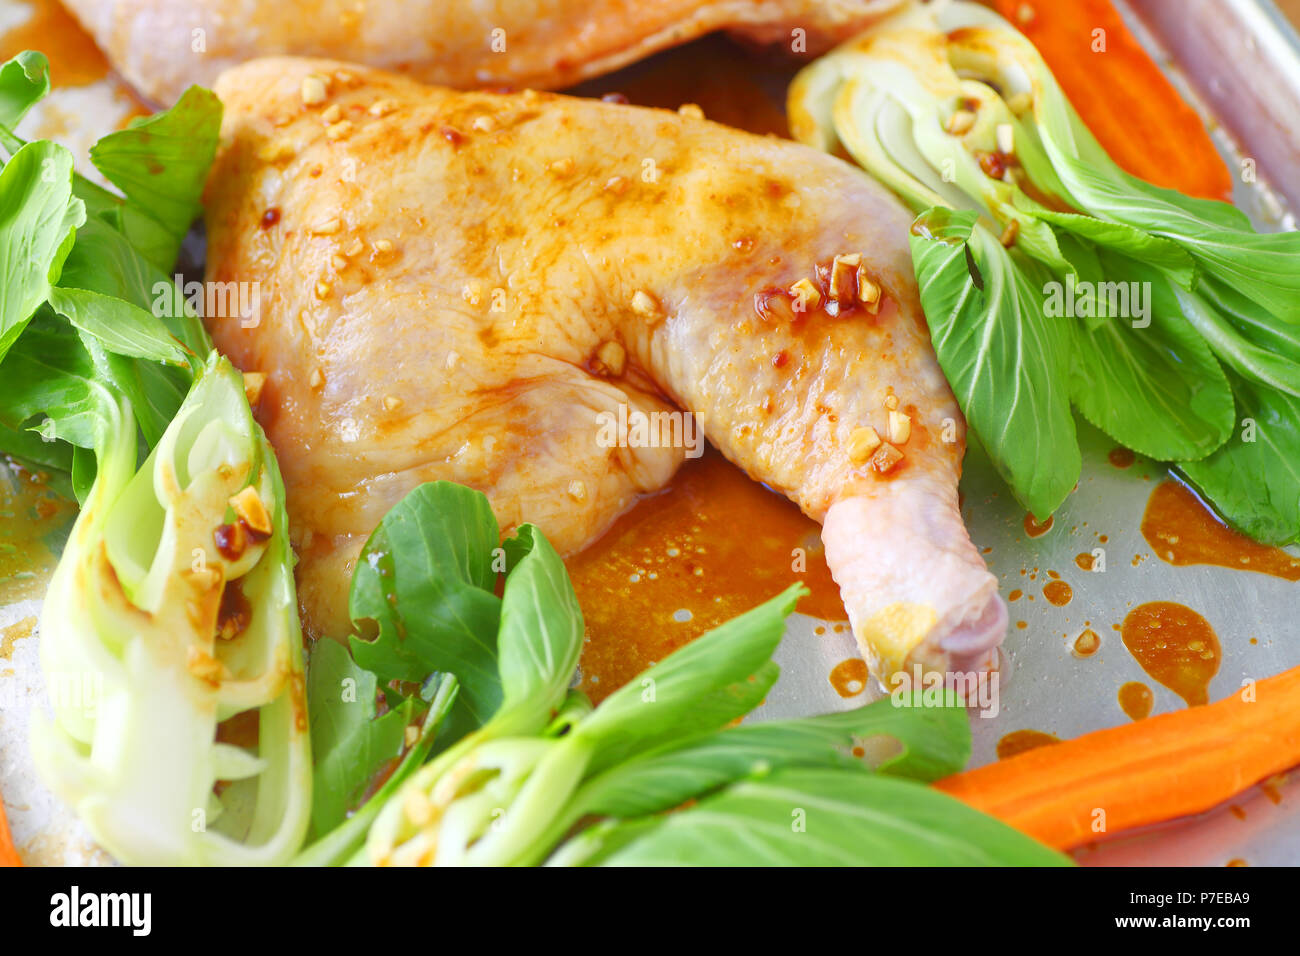 Raw chicken with hoisin garlic sauce, carrots and baby bok choy - Stock Image